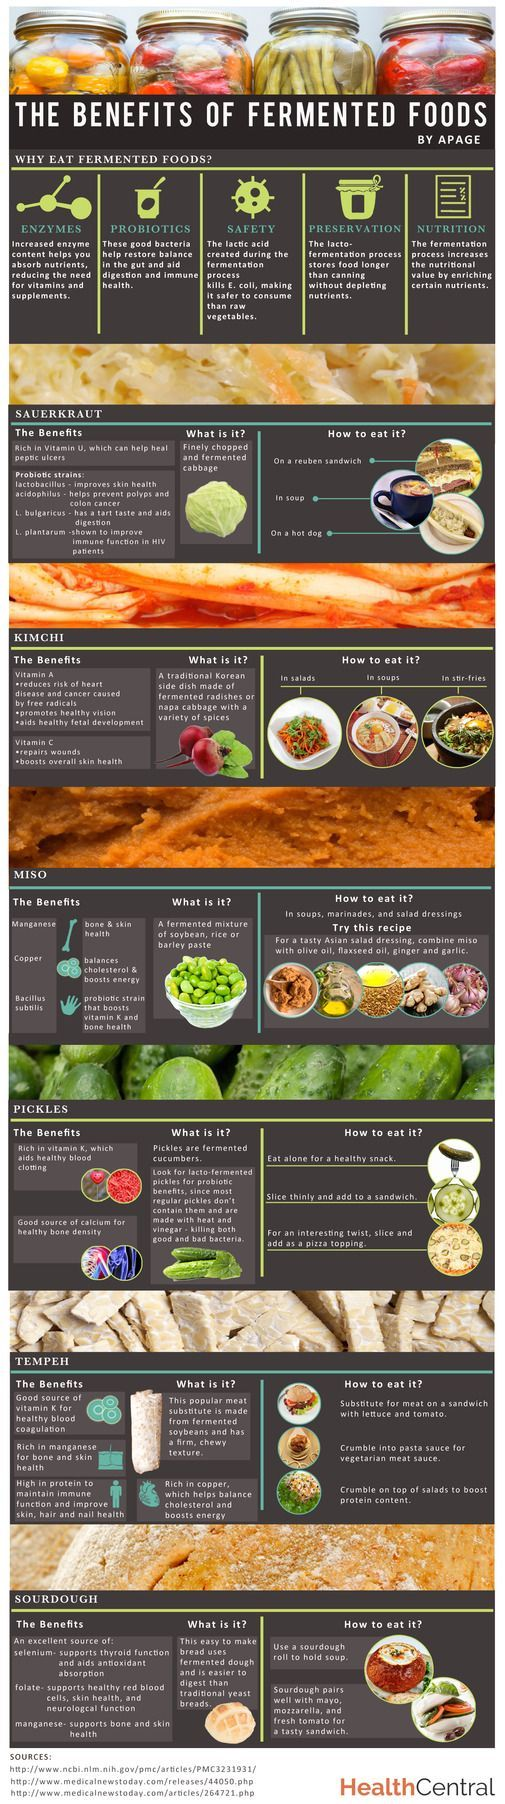 The health benefits of eating more #fermentedfoods. Learn the #health benefits by viewing our #infographic:   http://www.healthcentral.com/diet-exercise/c/458275/170844/fermented-infographic?ap=2012